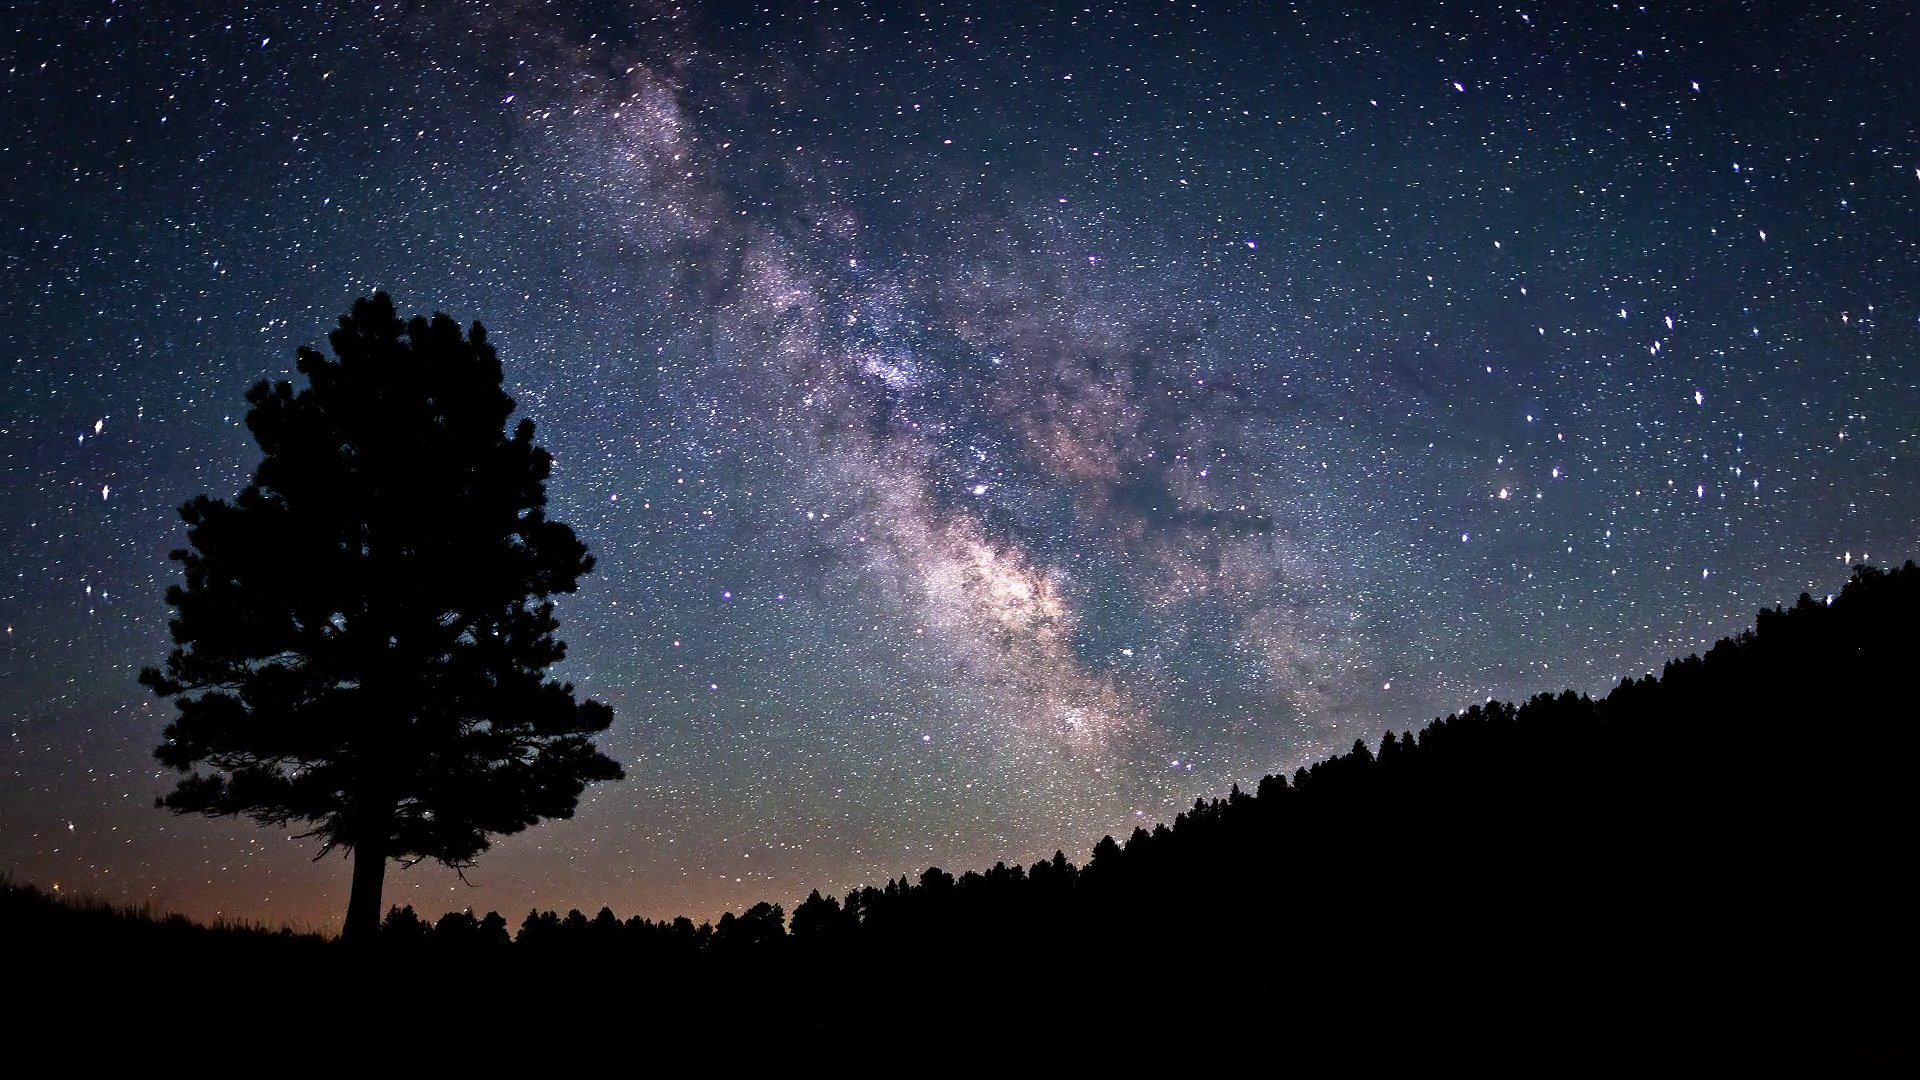 127 milky way hd wallpapers | background images - wallpaper abyss